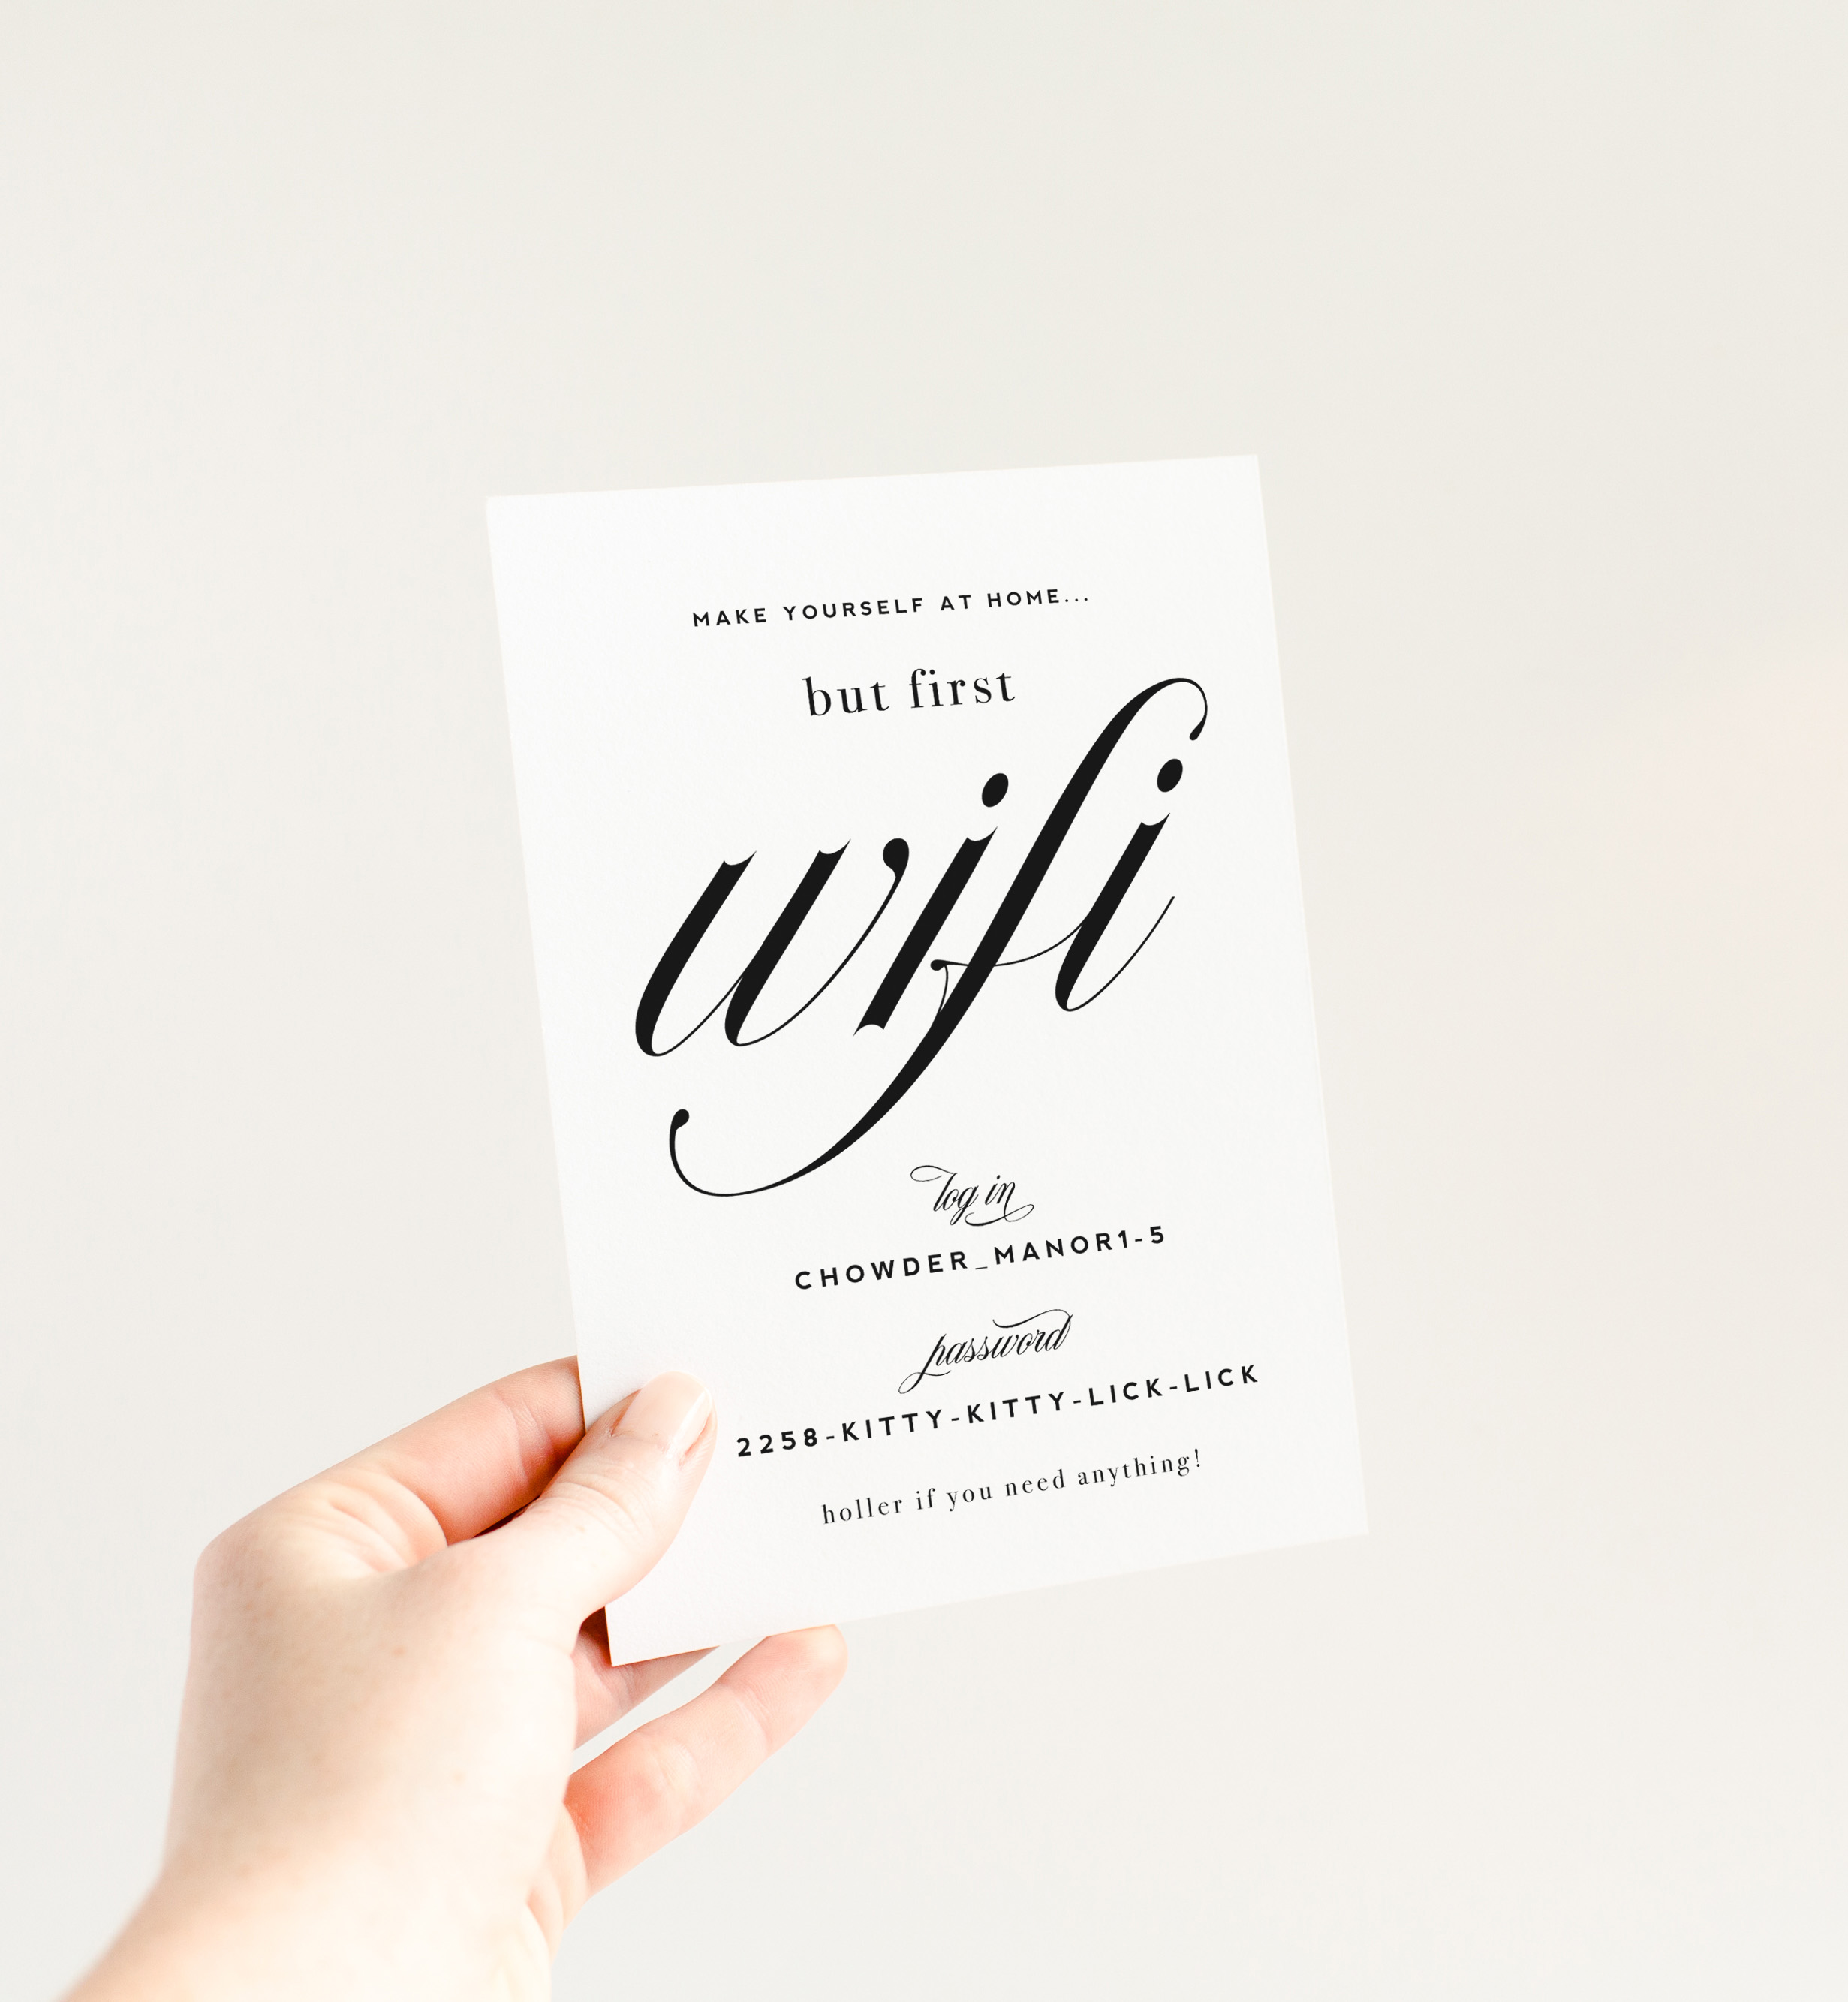 image regarding Printable Wifi Sign called Kitty Meow Boutique Paper Social gathering Products and solutions, Greeting Playing cards